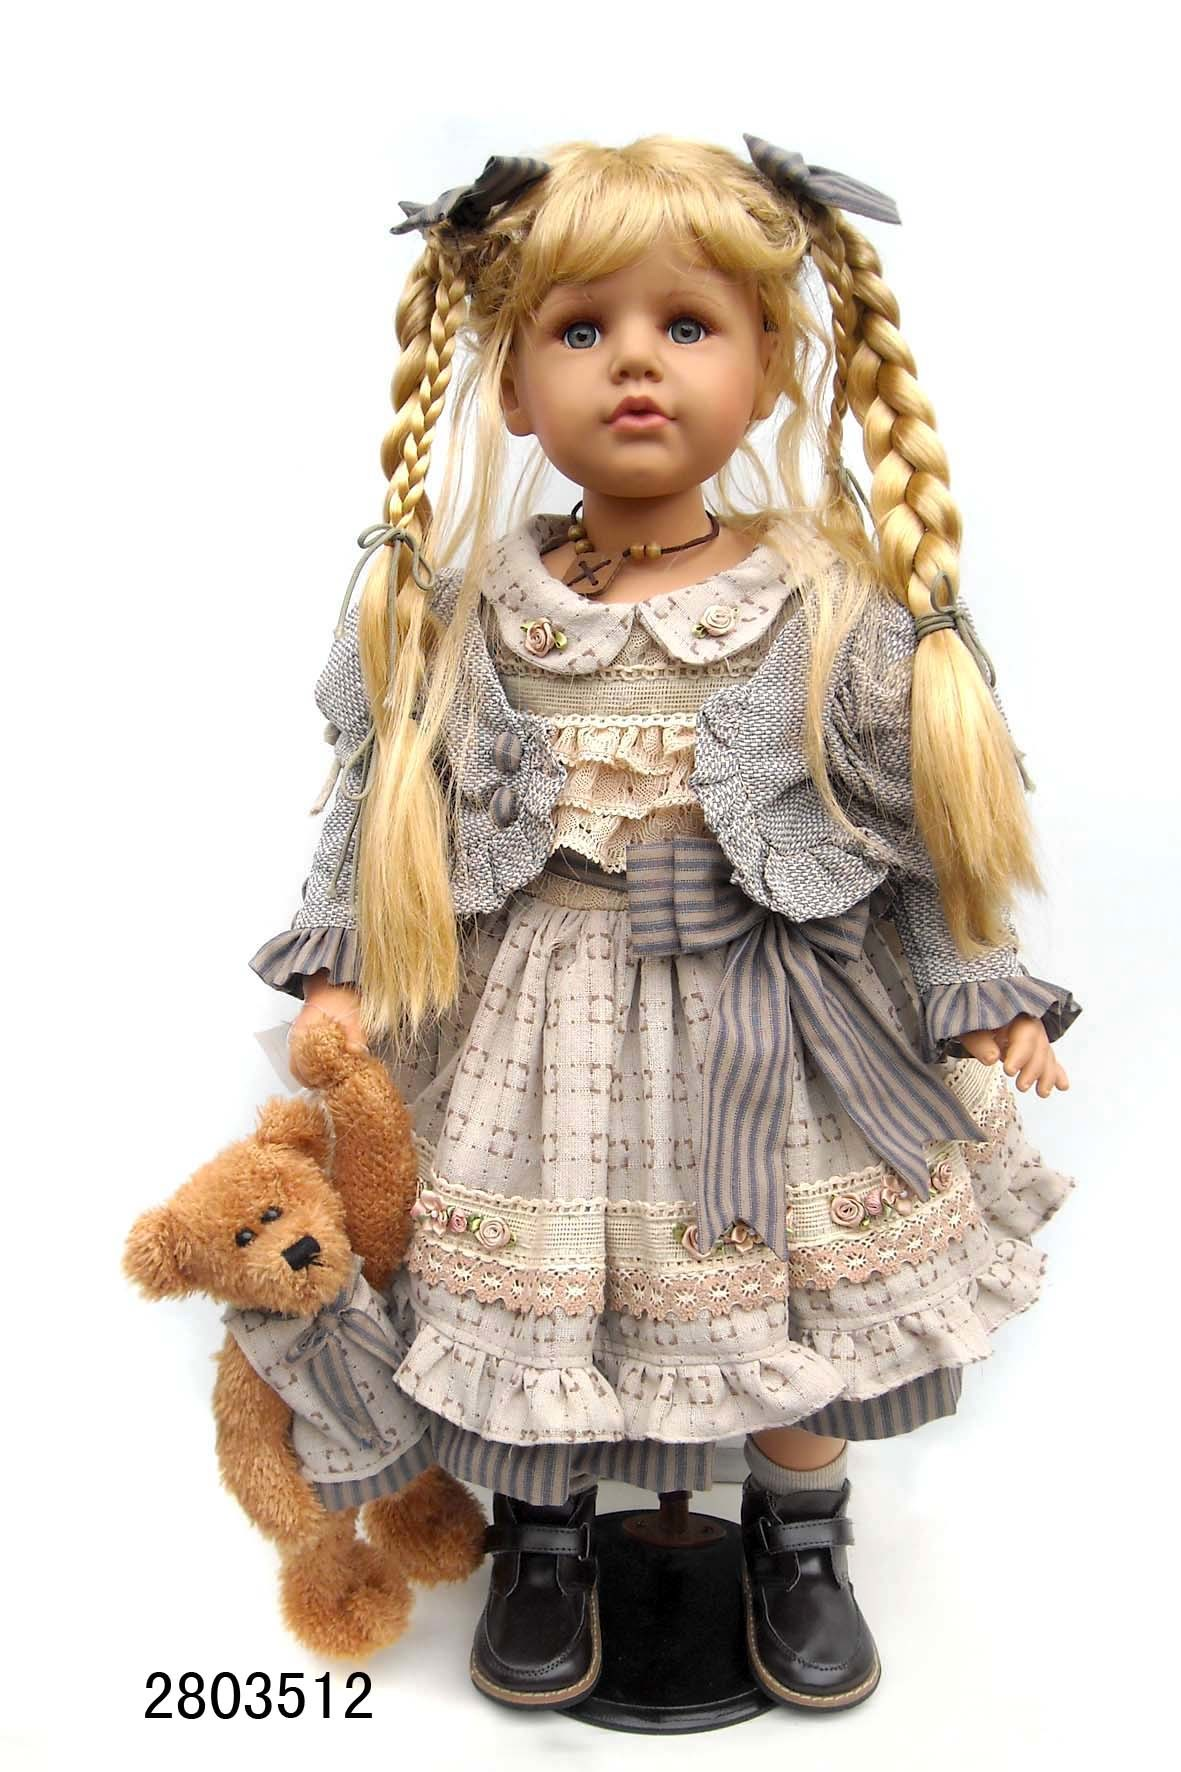 China 28 Quot Vinyl Doll Item No 204551 China Doll Vinyl Doll